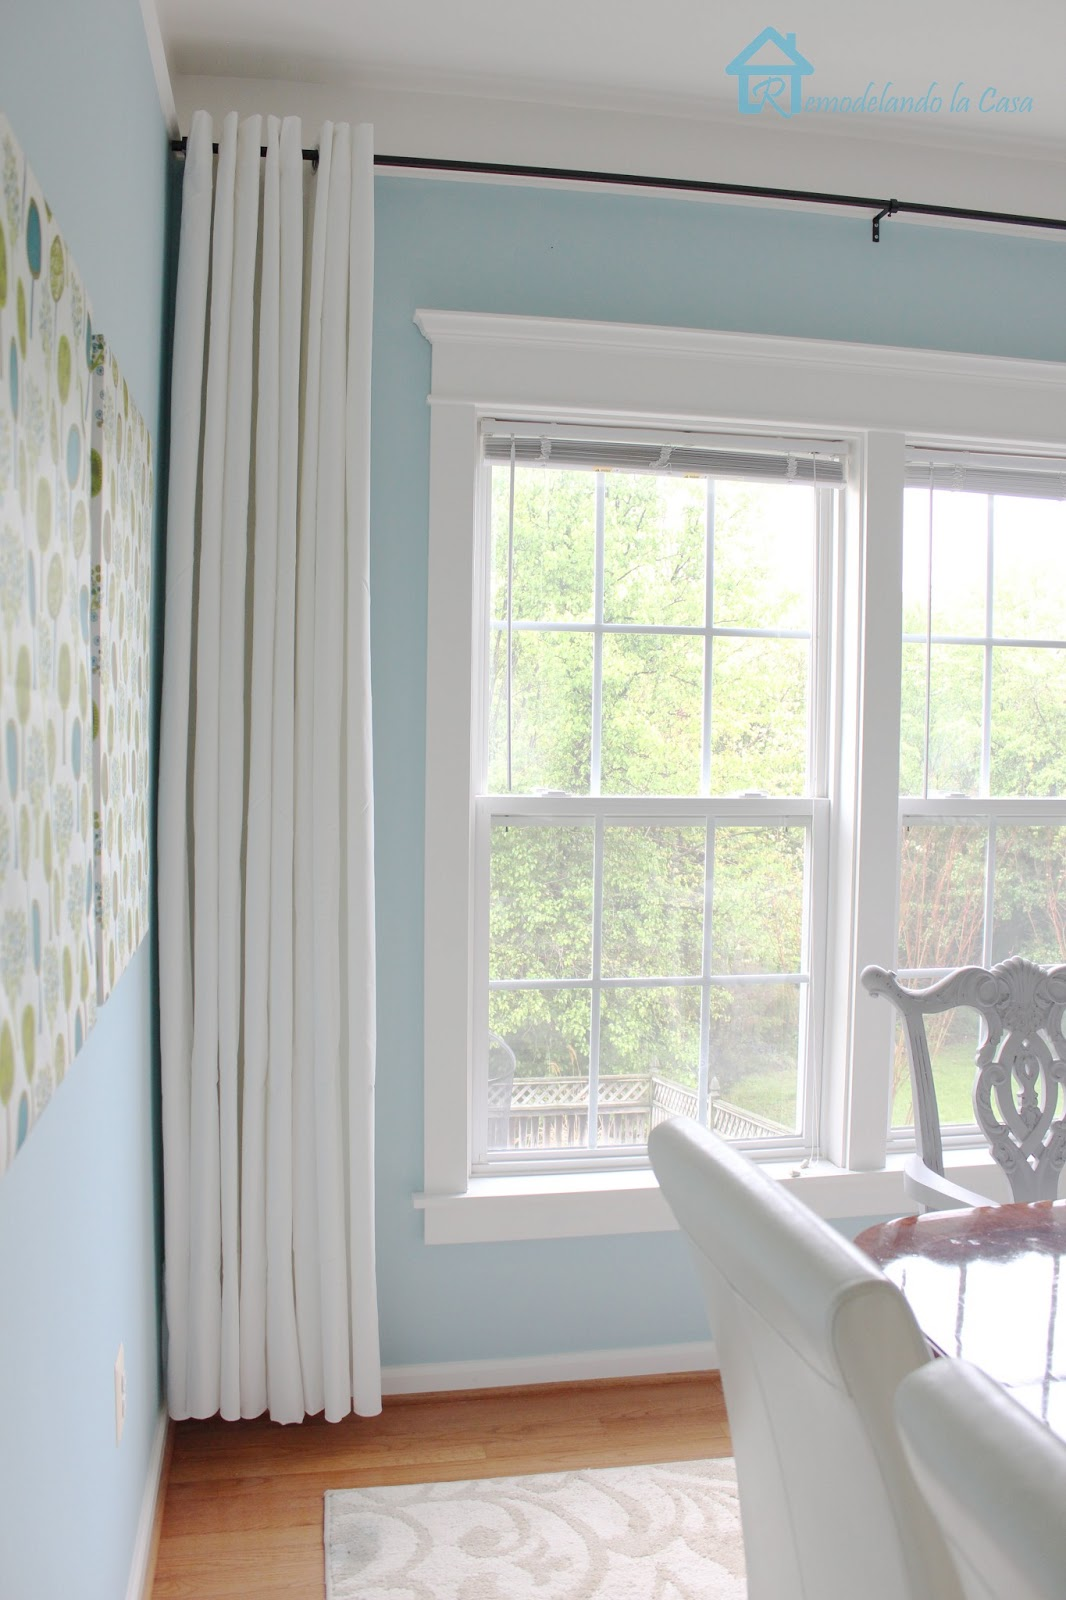 Remodelando la Casa: How to Make your Curtains Longer